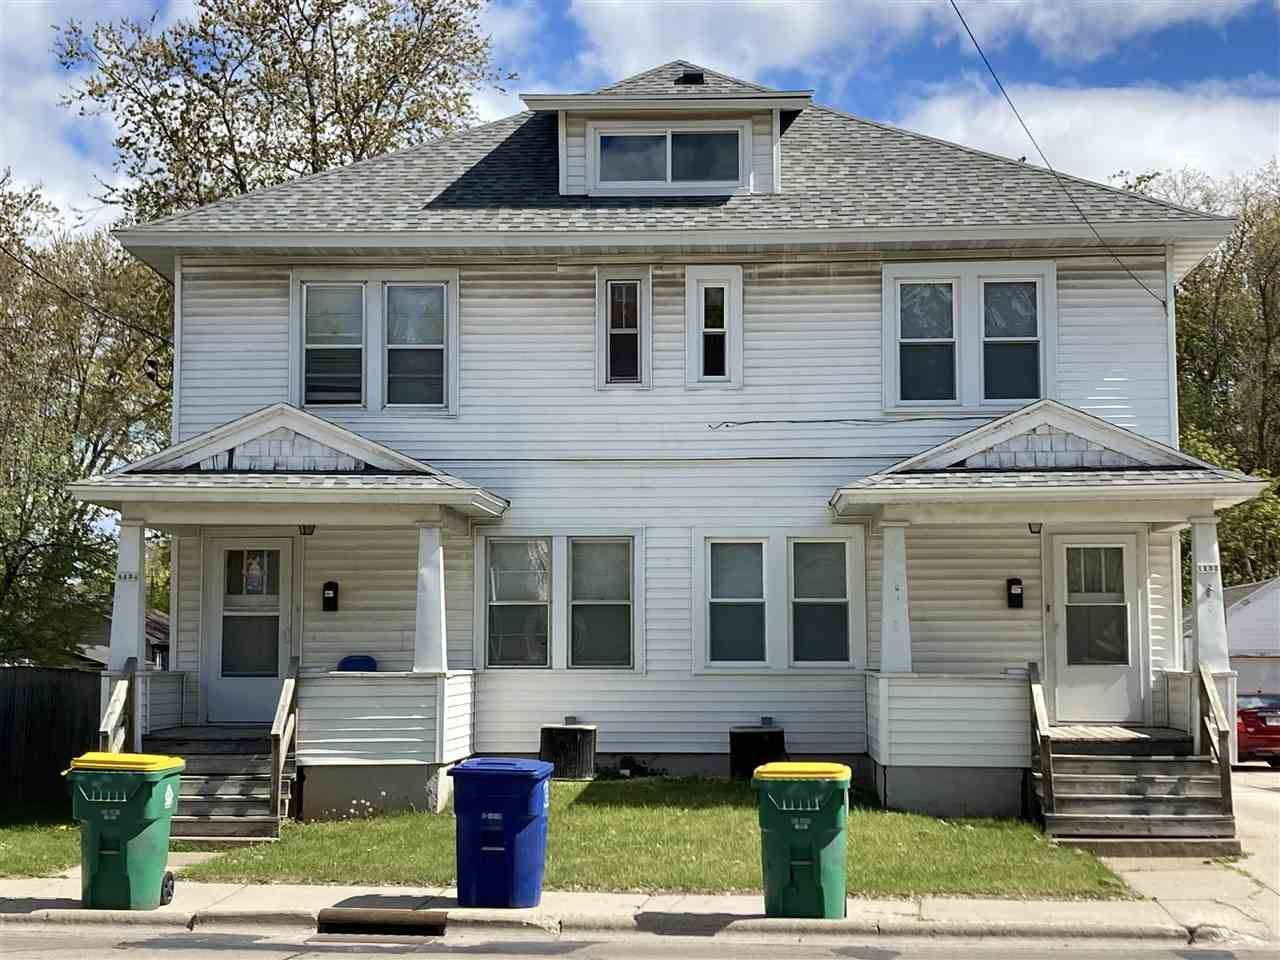 1132 SHAWANO Avenue, Green Bay, WI 54303 - MLS#: 50240217